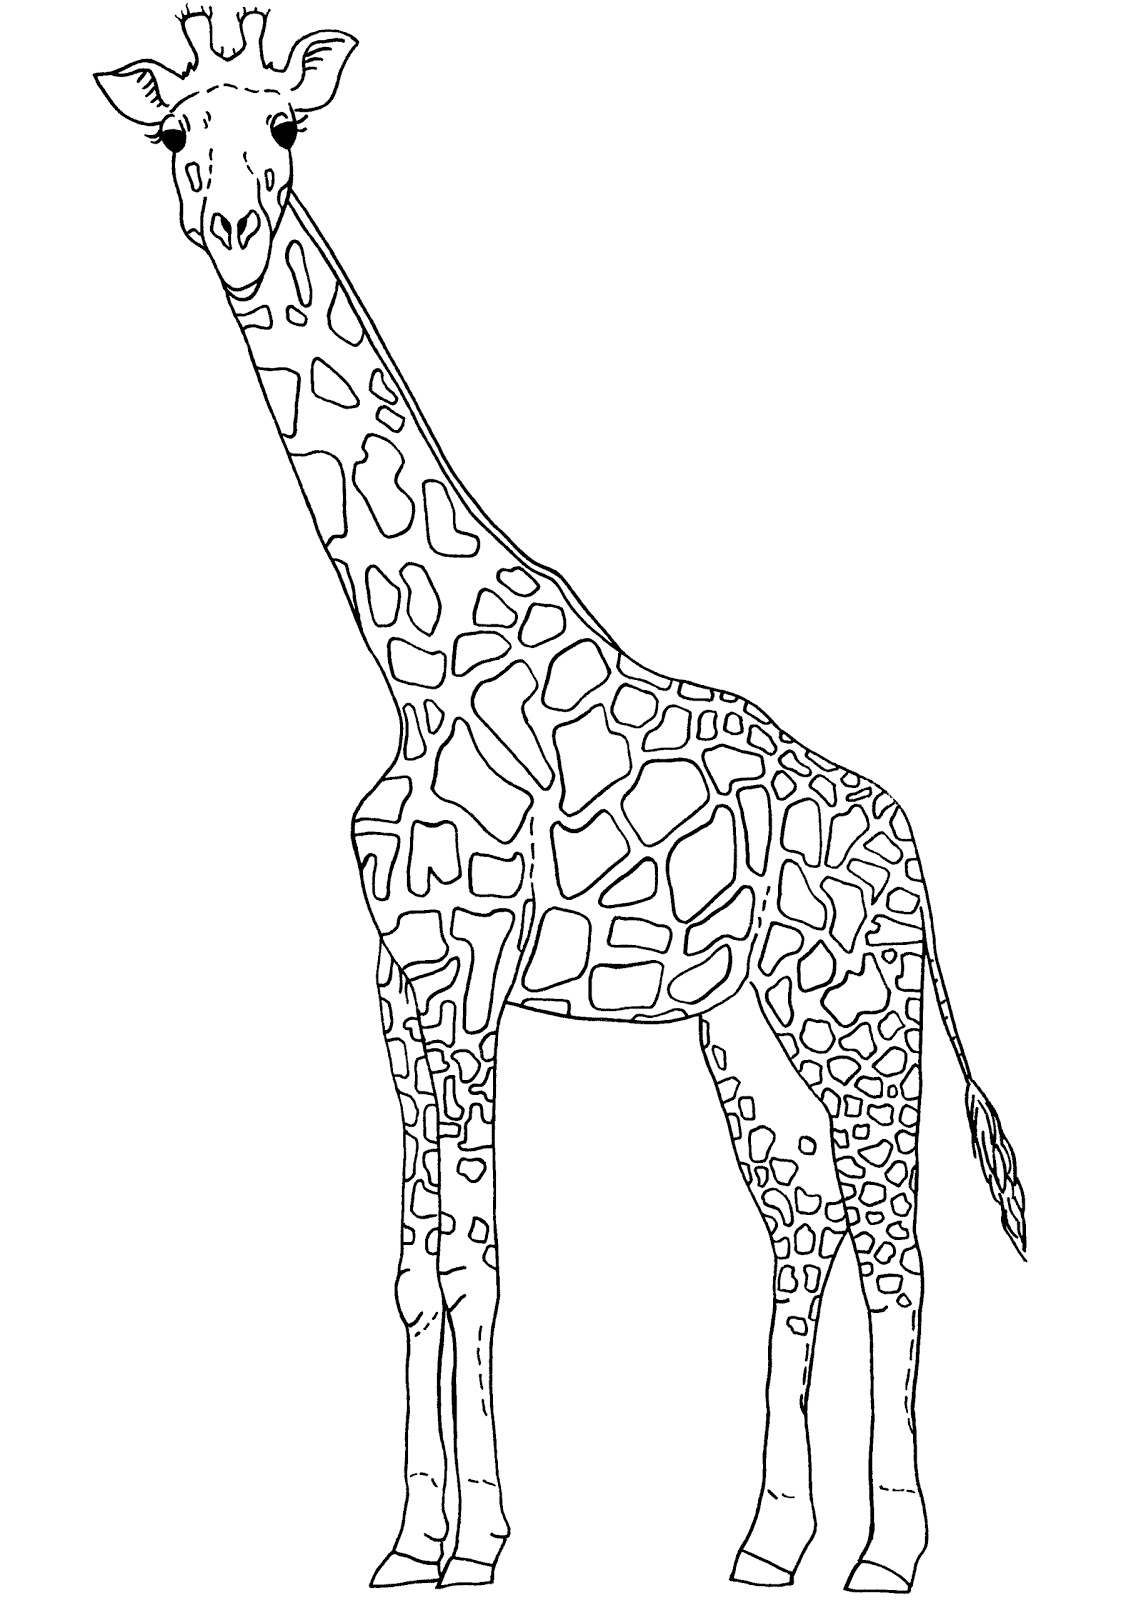 Outline of Giraffe for Preschoolers http://primaryschoolteachersartforum.blogspot.com/2010_12_01_archive.html